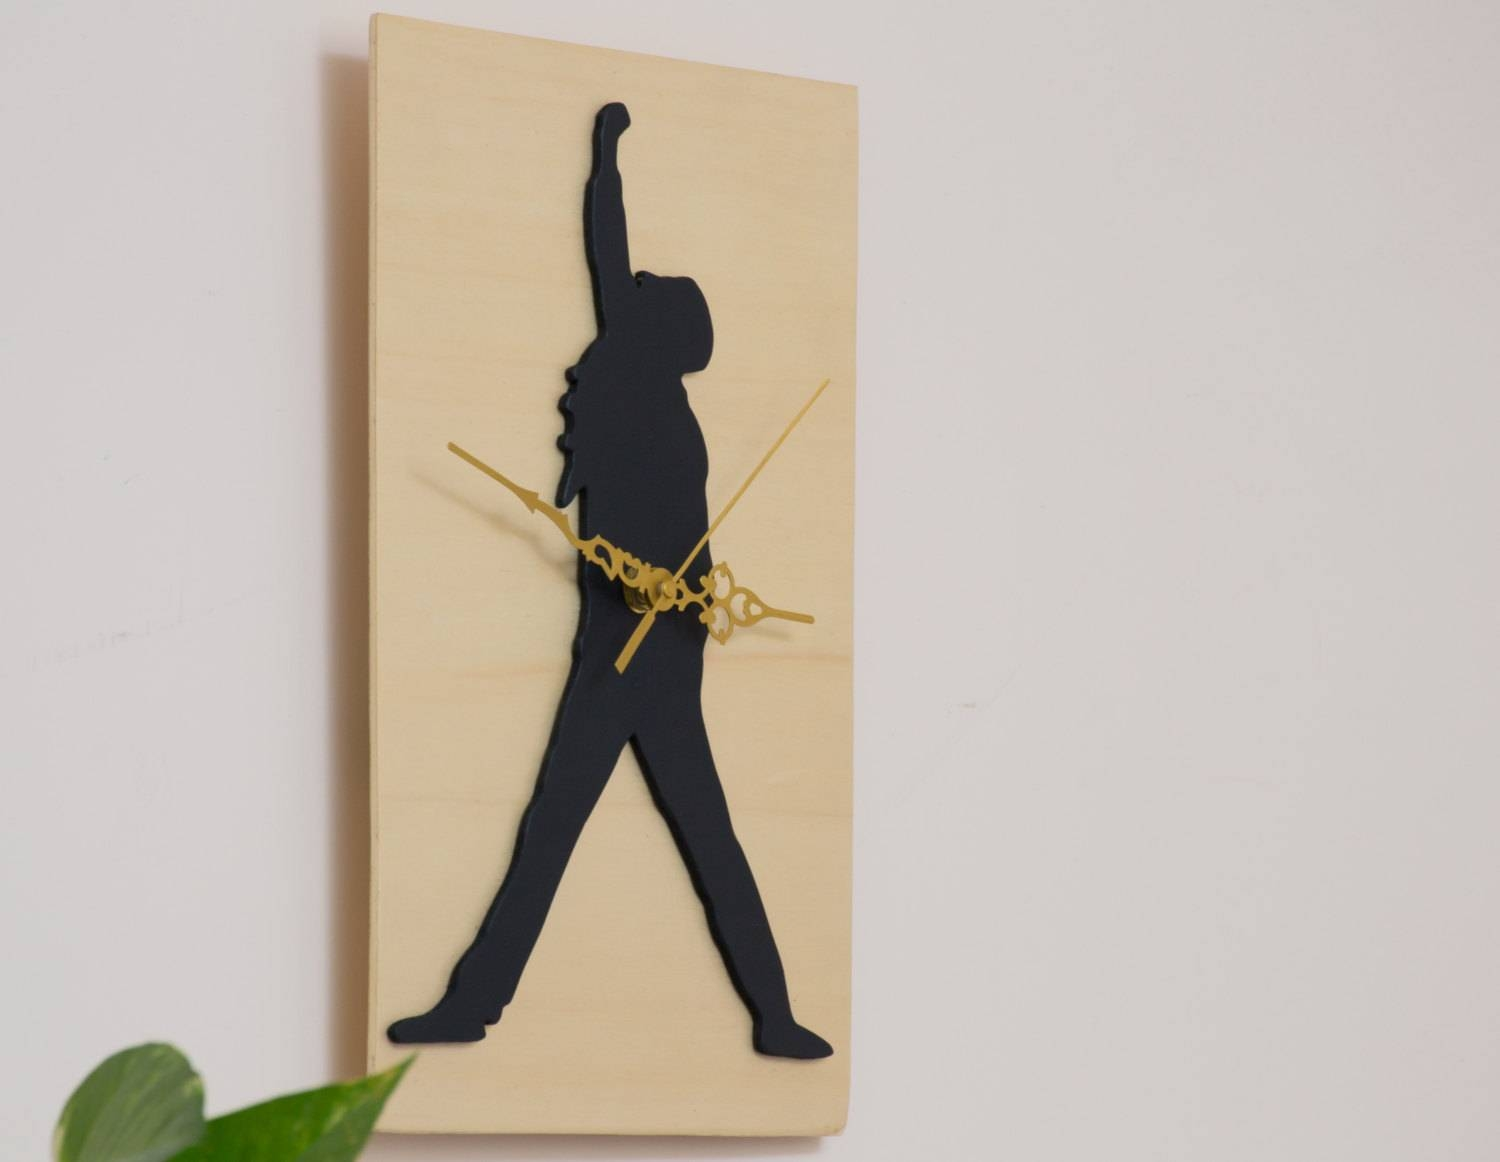 Freddie Mercury Wooden Clock Music Wall Art Music Lovers Within Most Up To Date Freddie Mercury Wall Art (View 3 of 15)